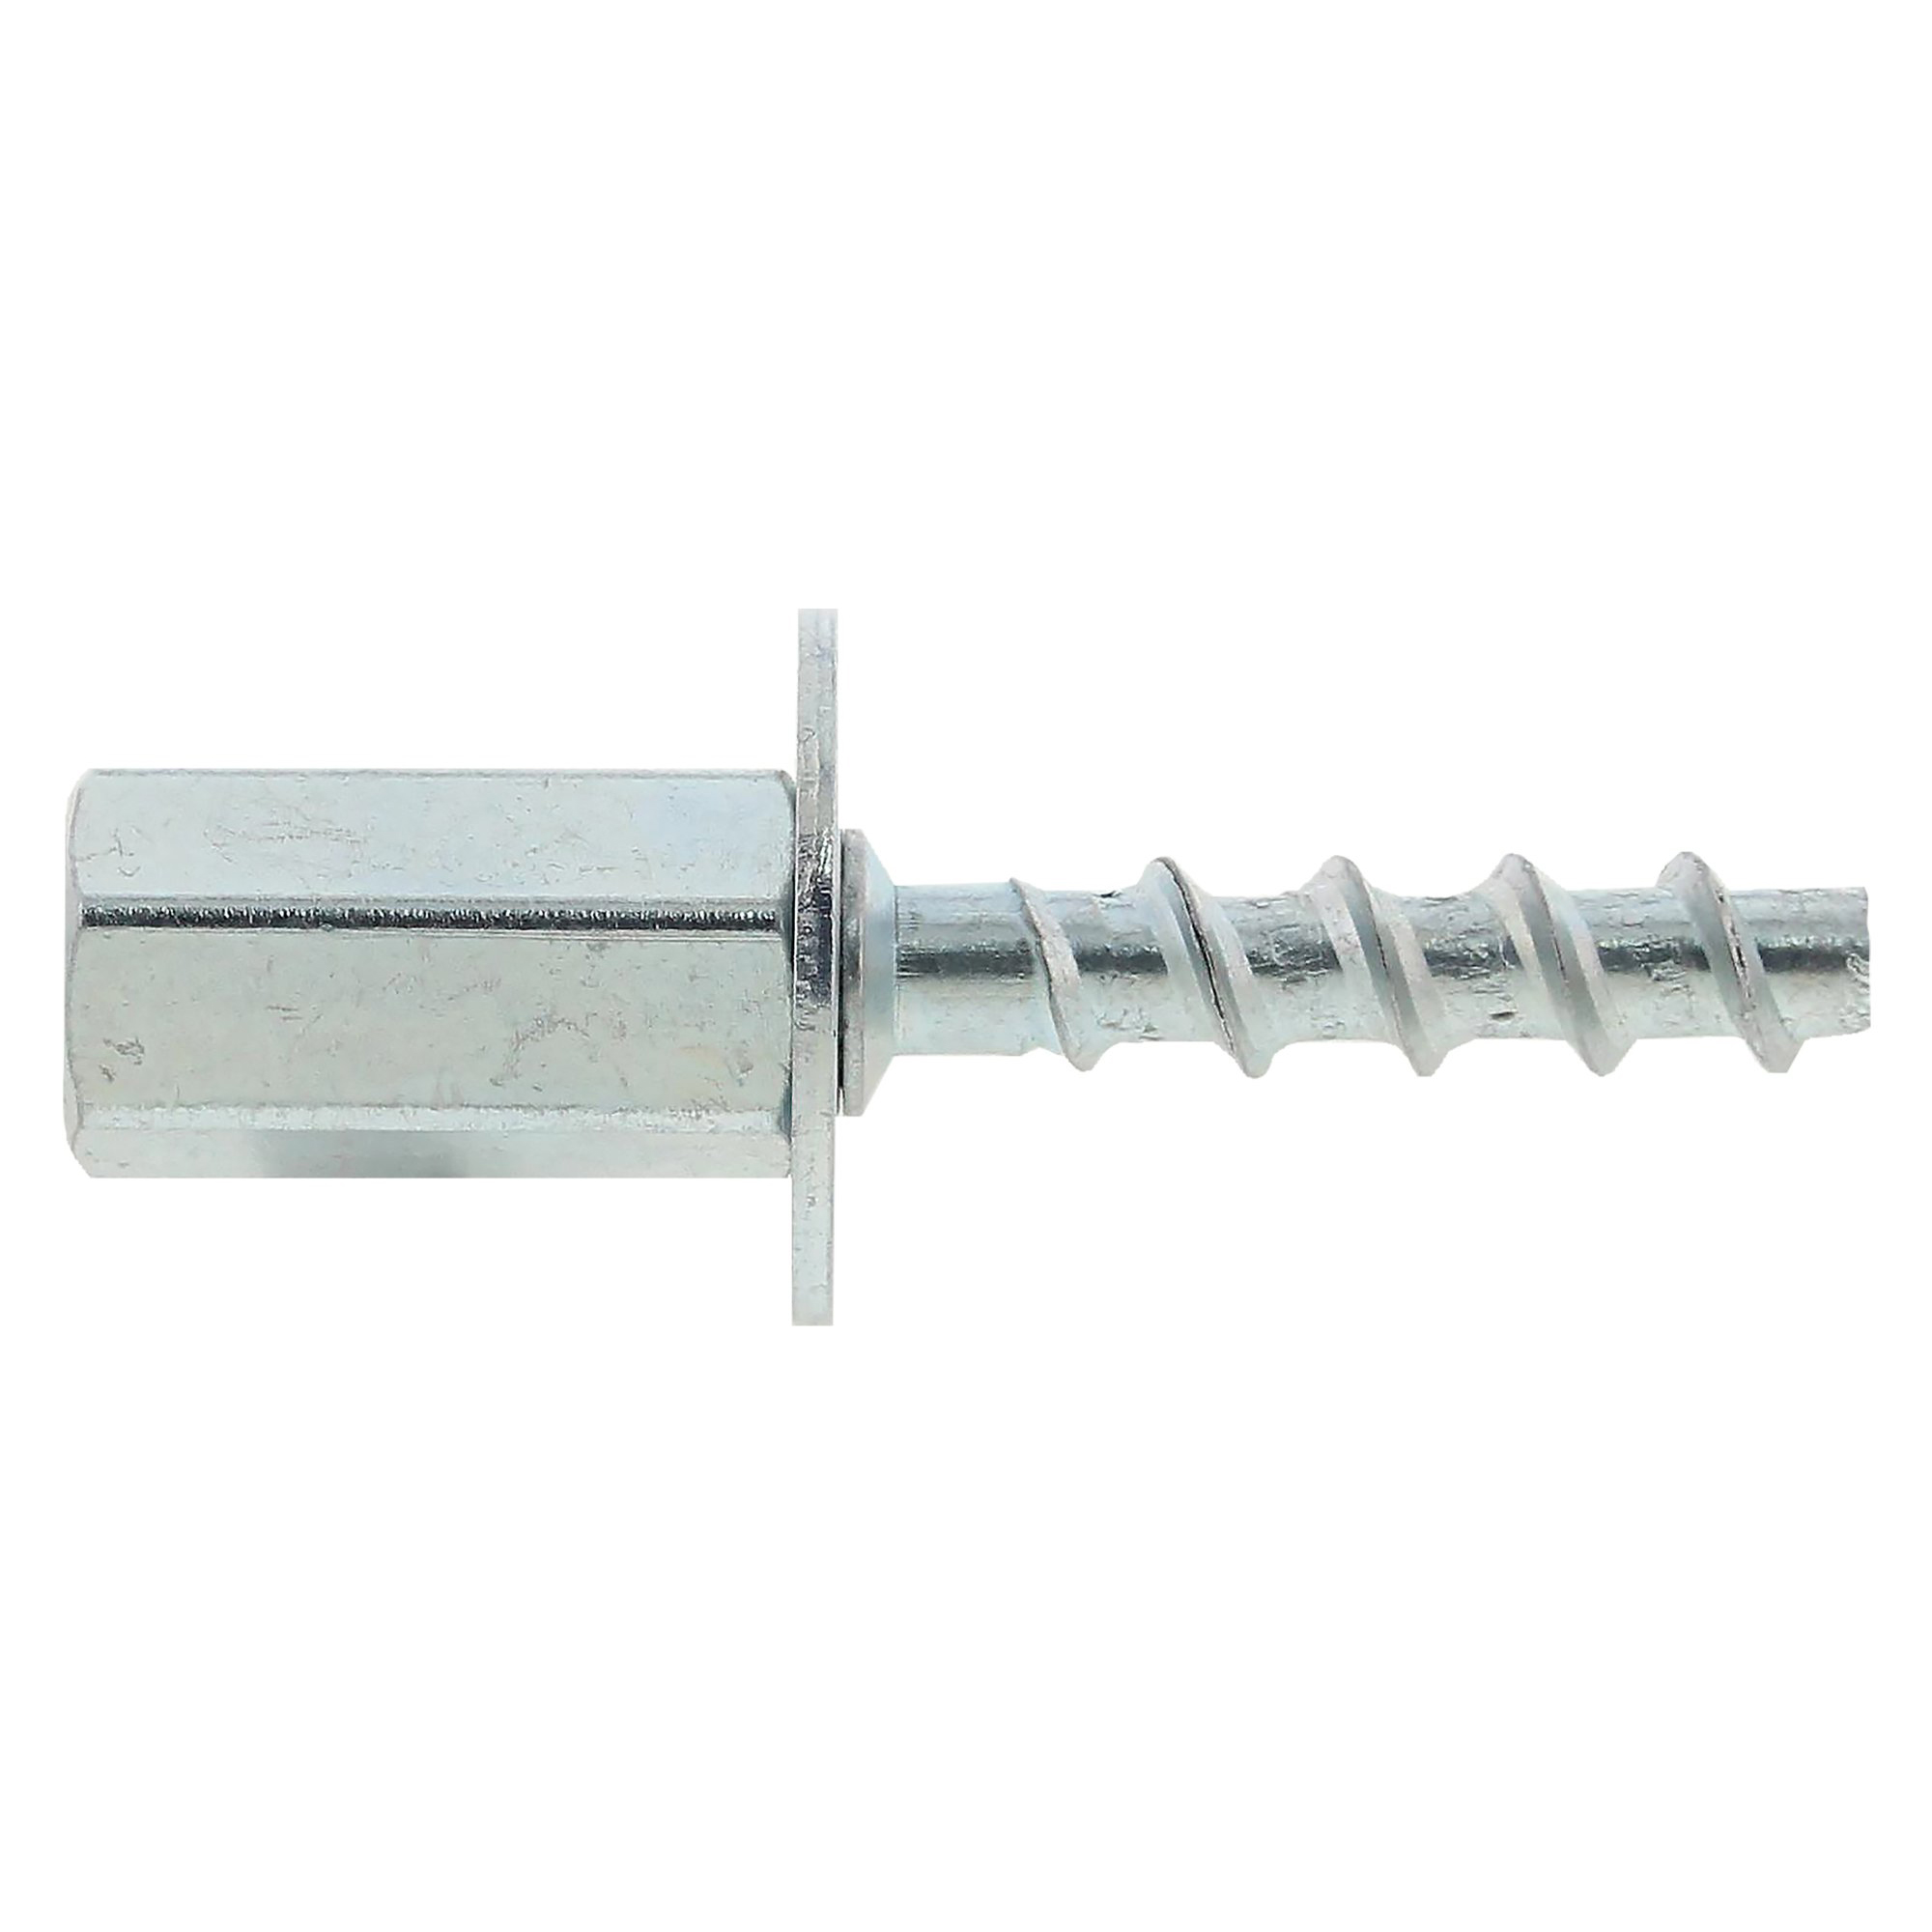 ITW SPIT TAPCON ROD CONCRETE SCREW (058785, 058786)